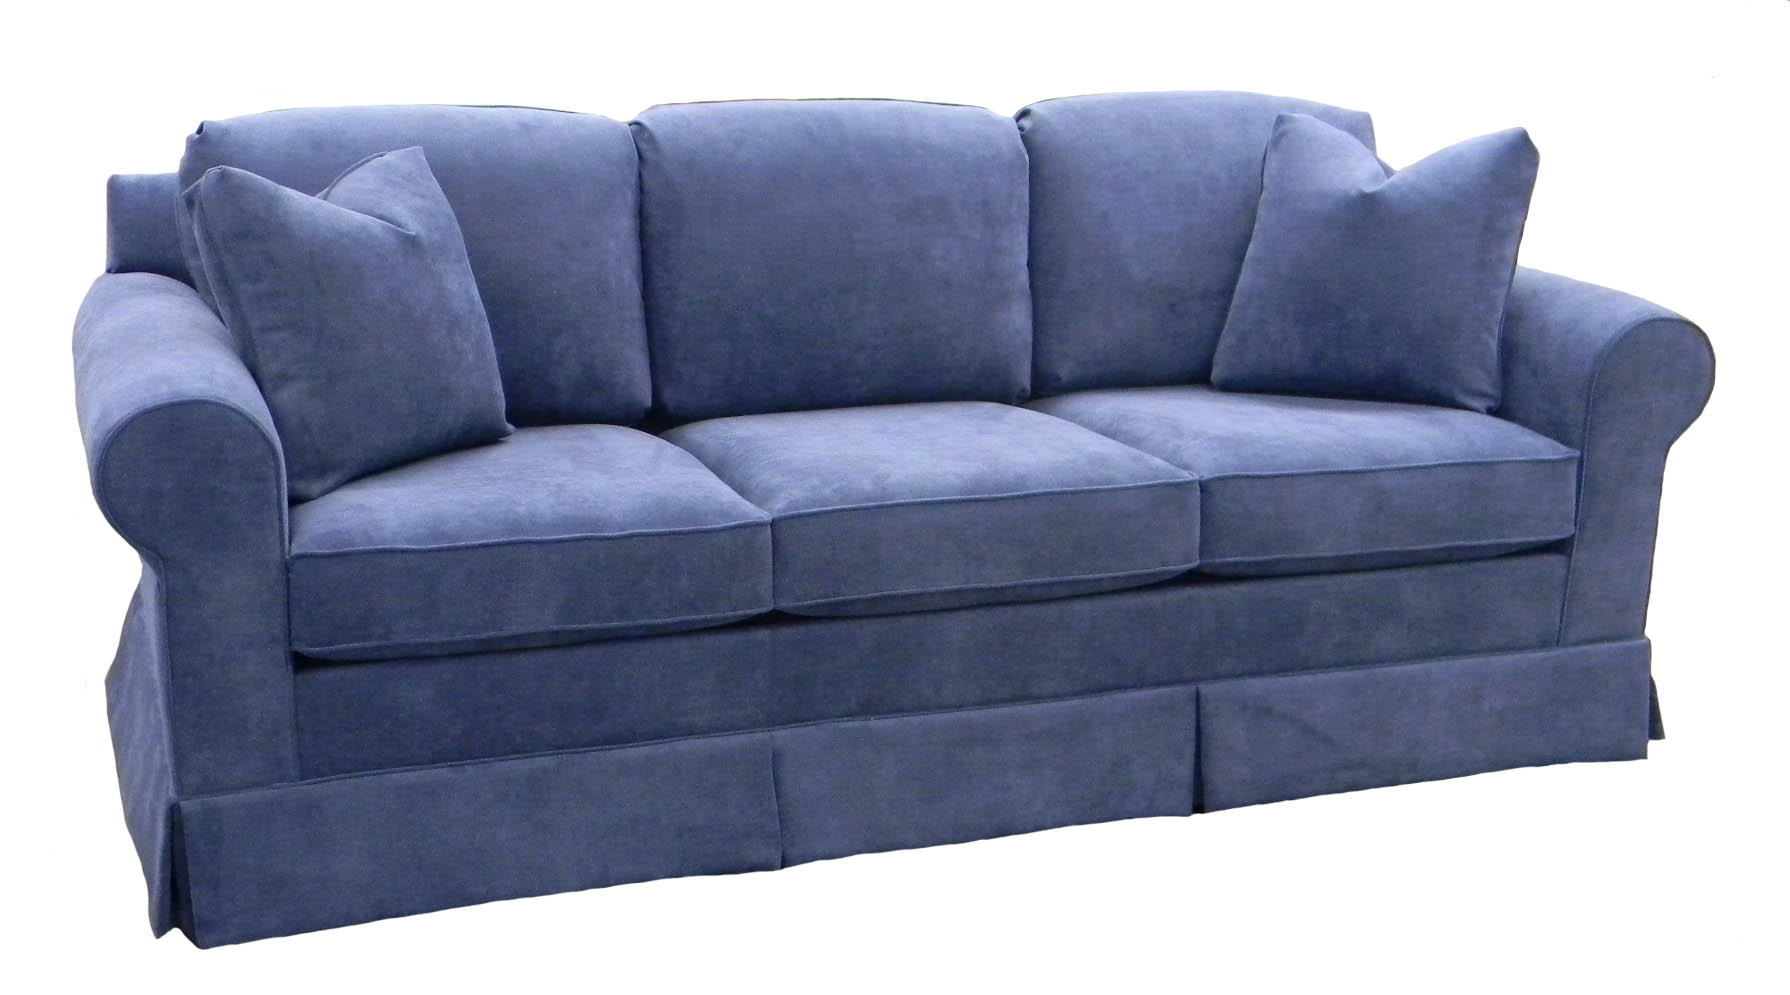 Hughes Sofa Couch Carolina Chair North Carolina American